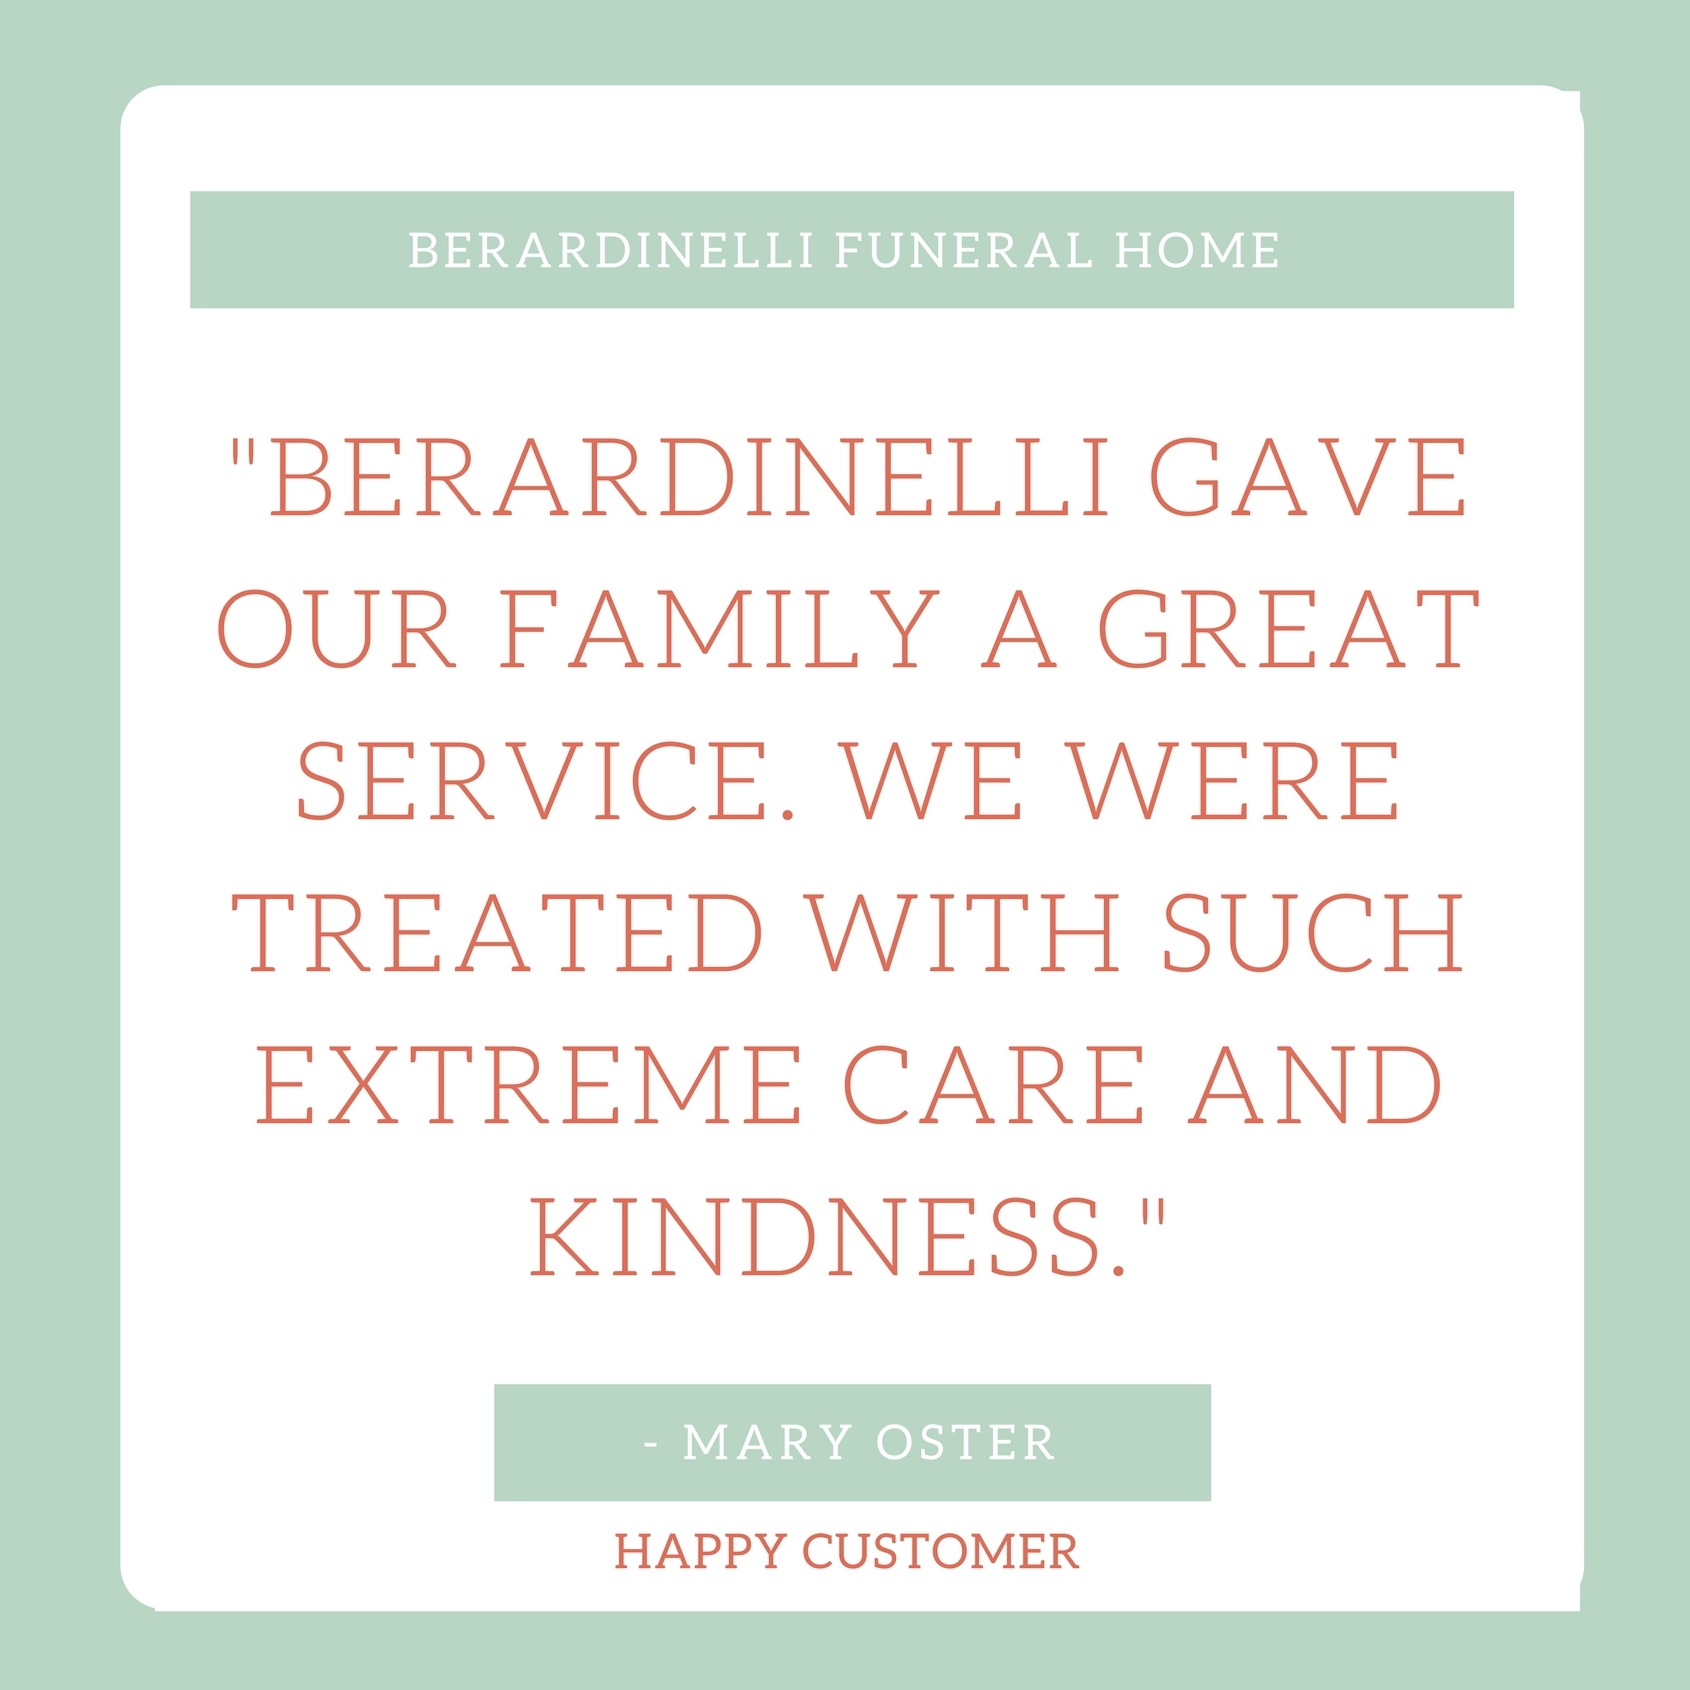 Berardinelli Funeral Home Review